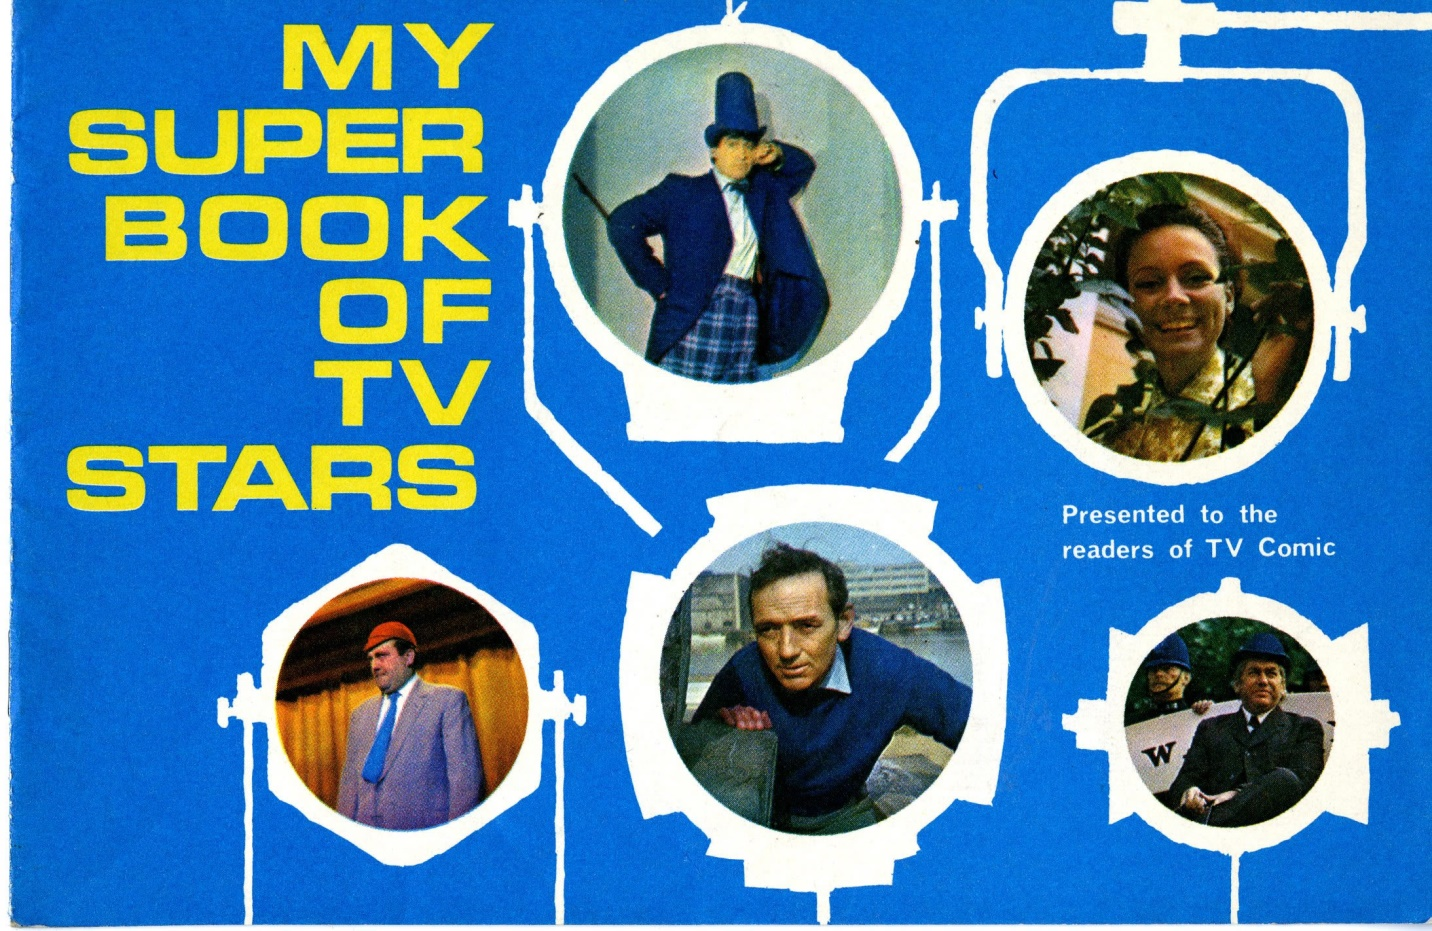 My Super Book of TV Stars, sticker book presented free to the readers of TV Comic